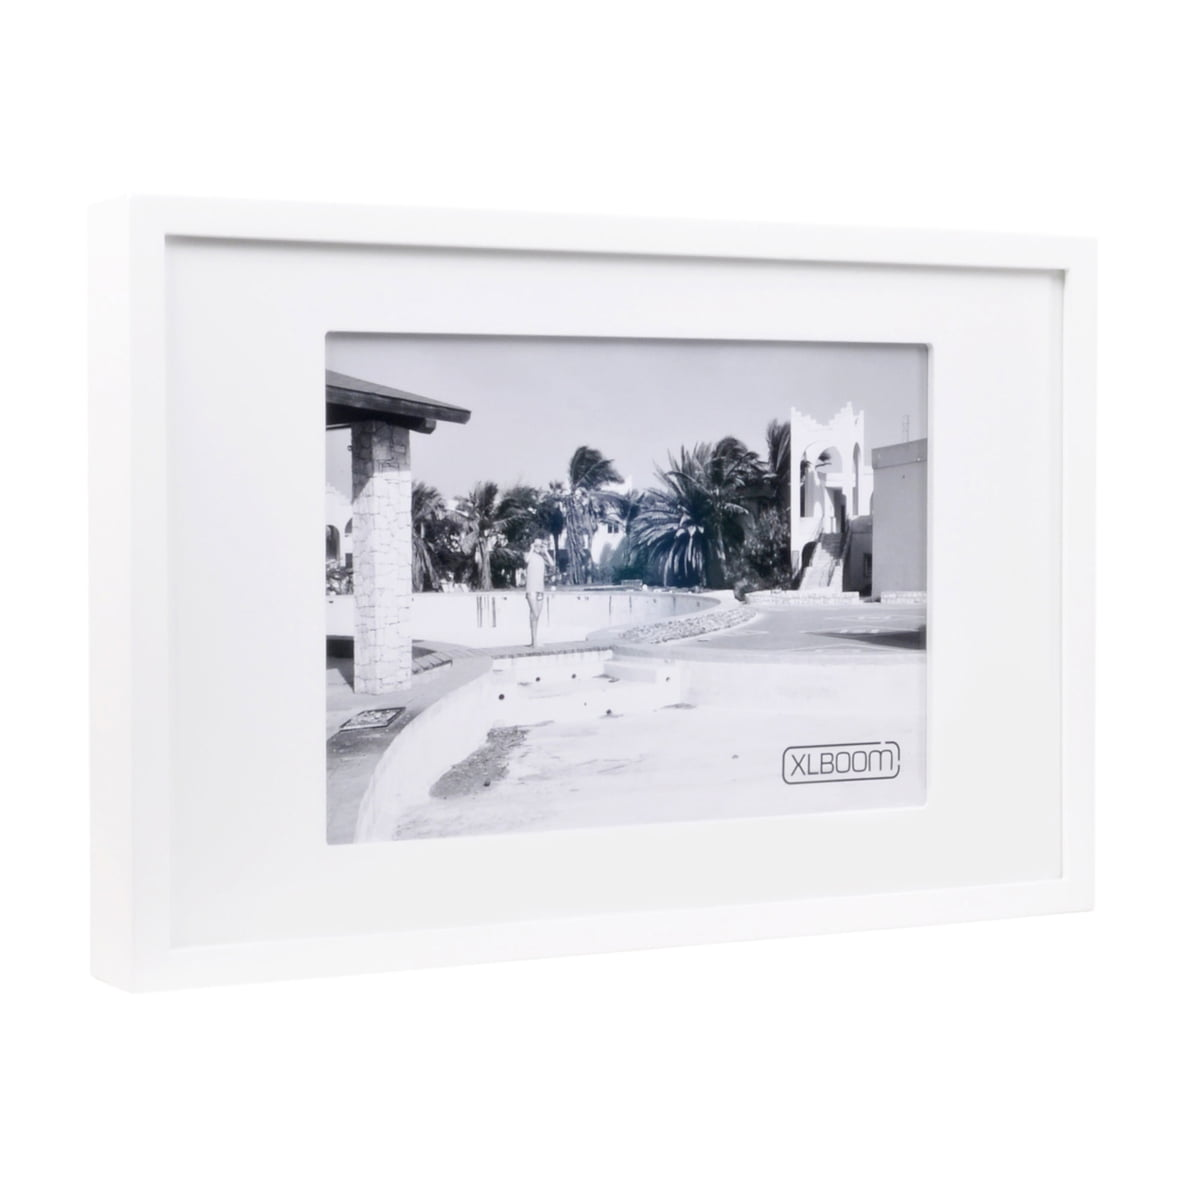 Buy the Berlin Frame by XLBoom in the shop